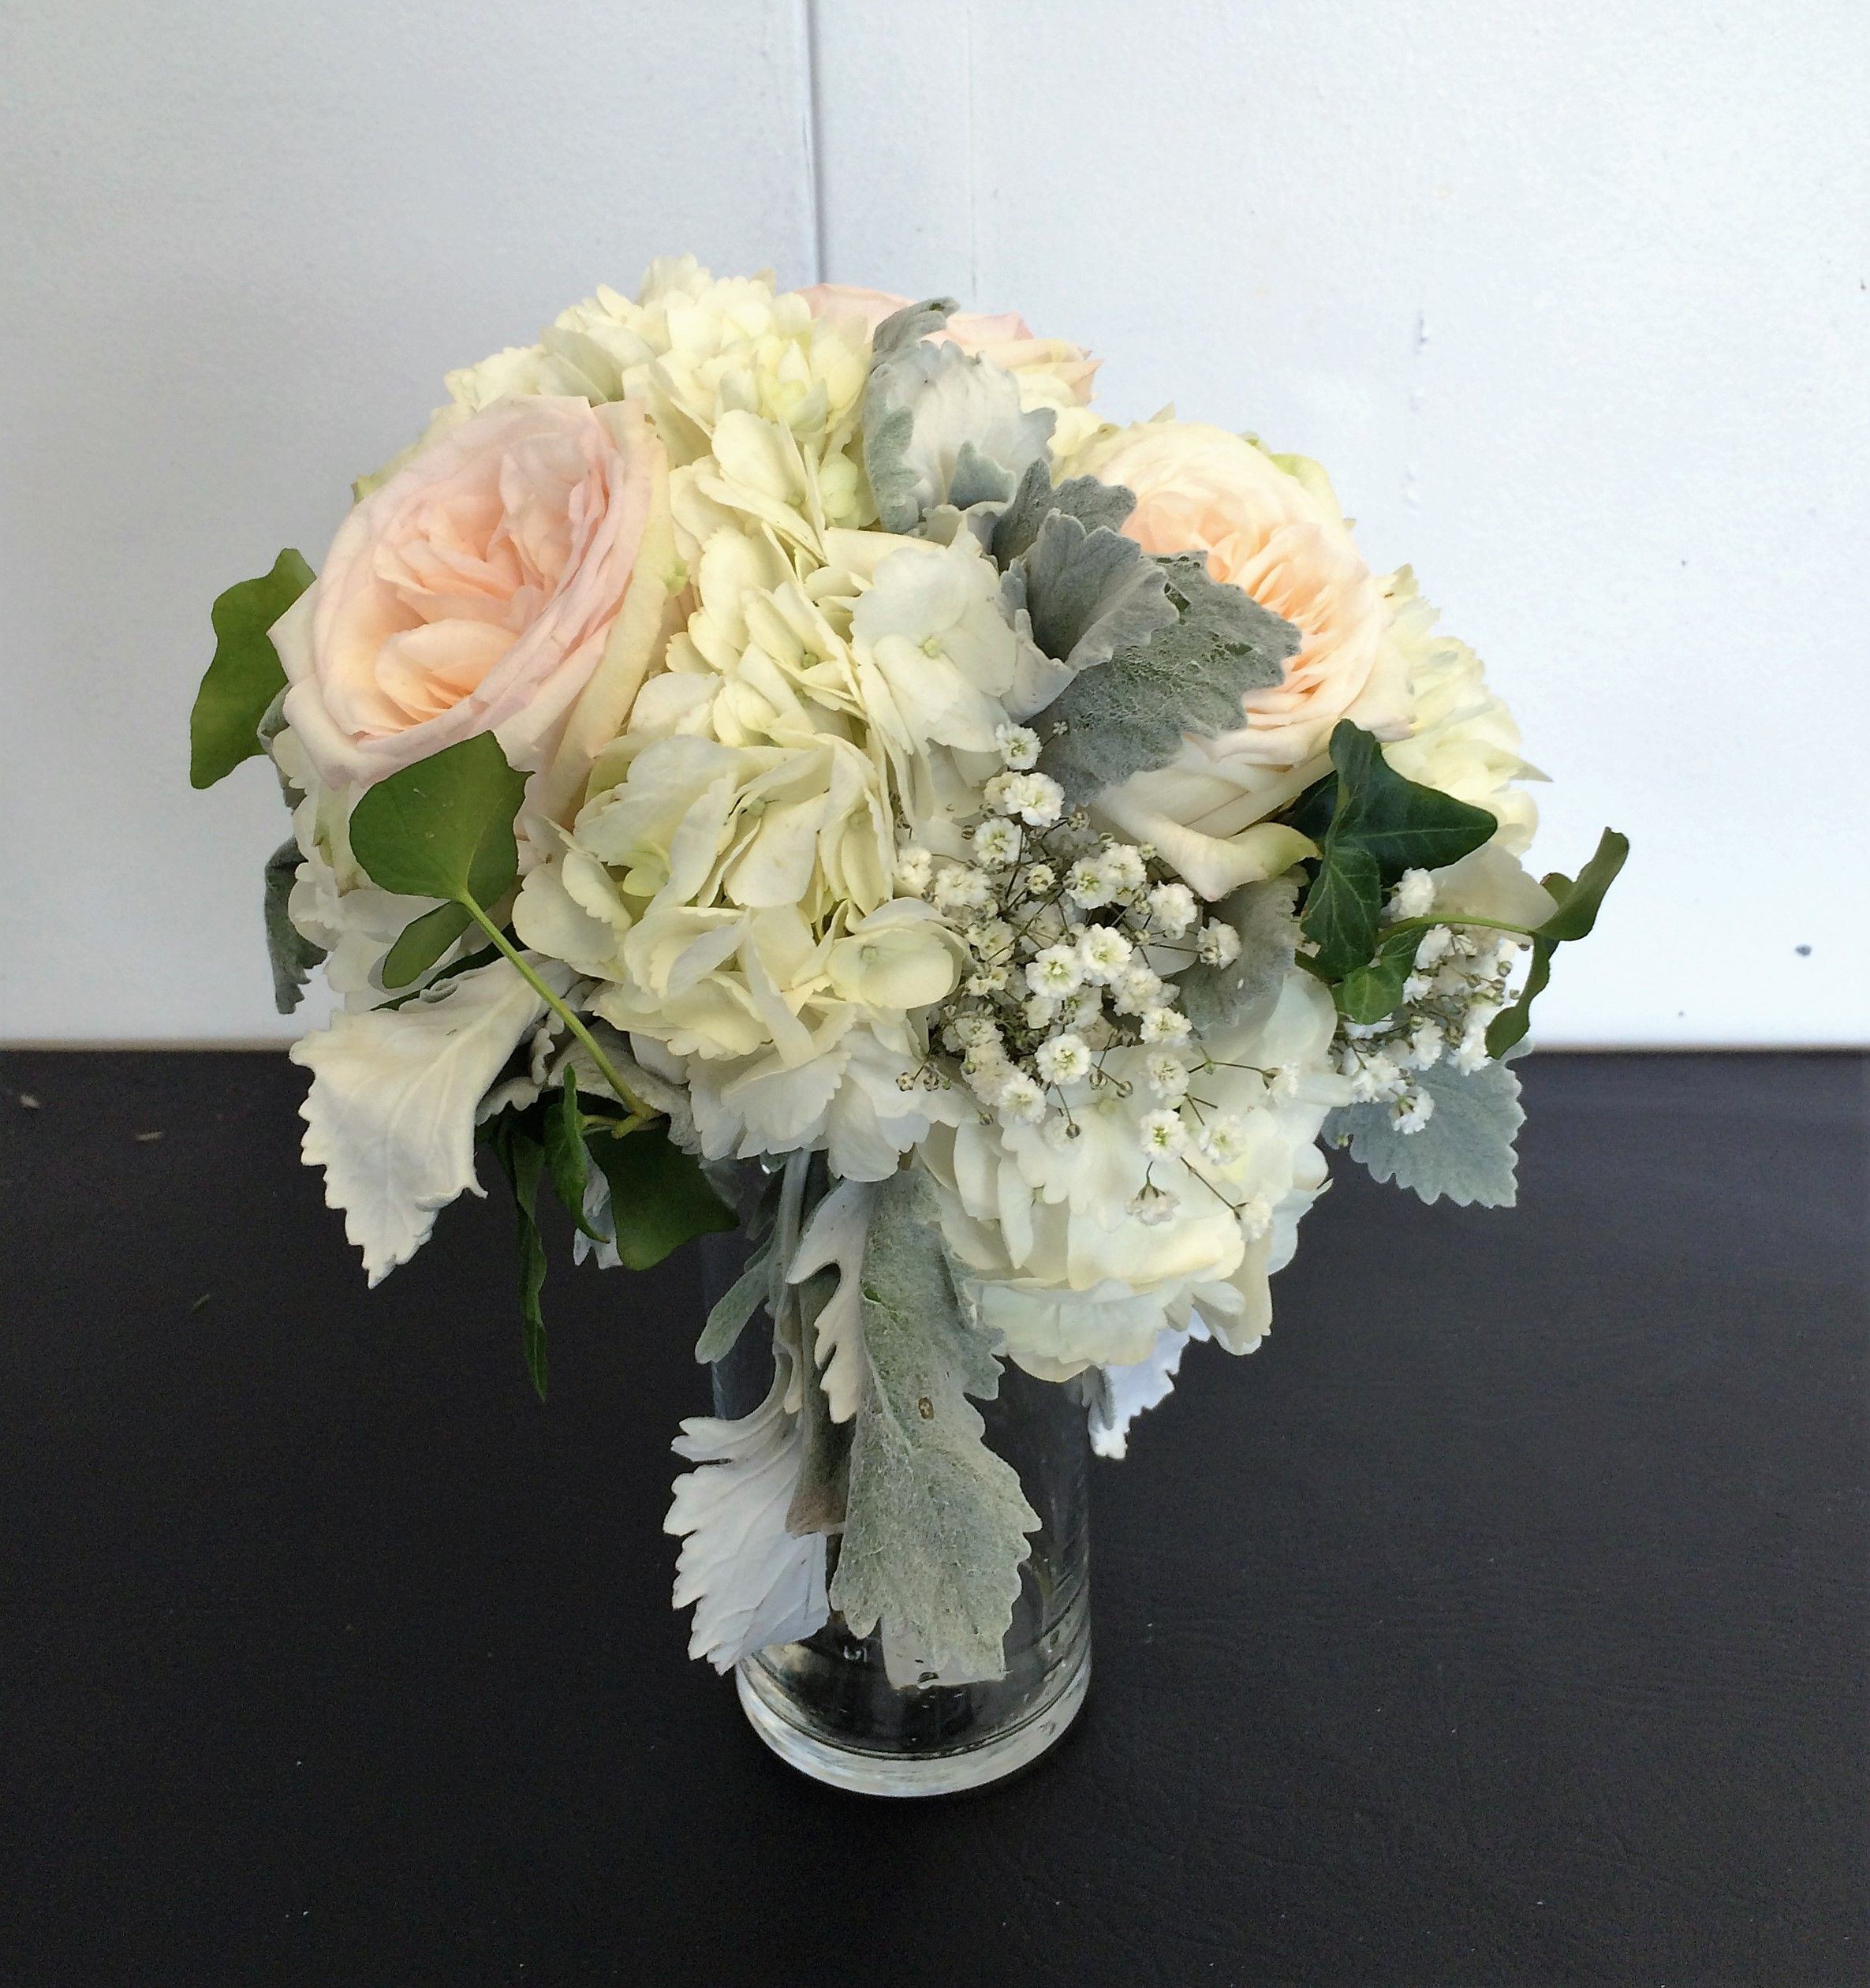 bridal bouquet blush garden roses hydrangea dusty miller babies breath white